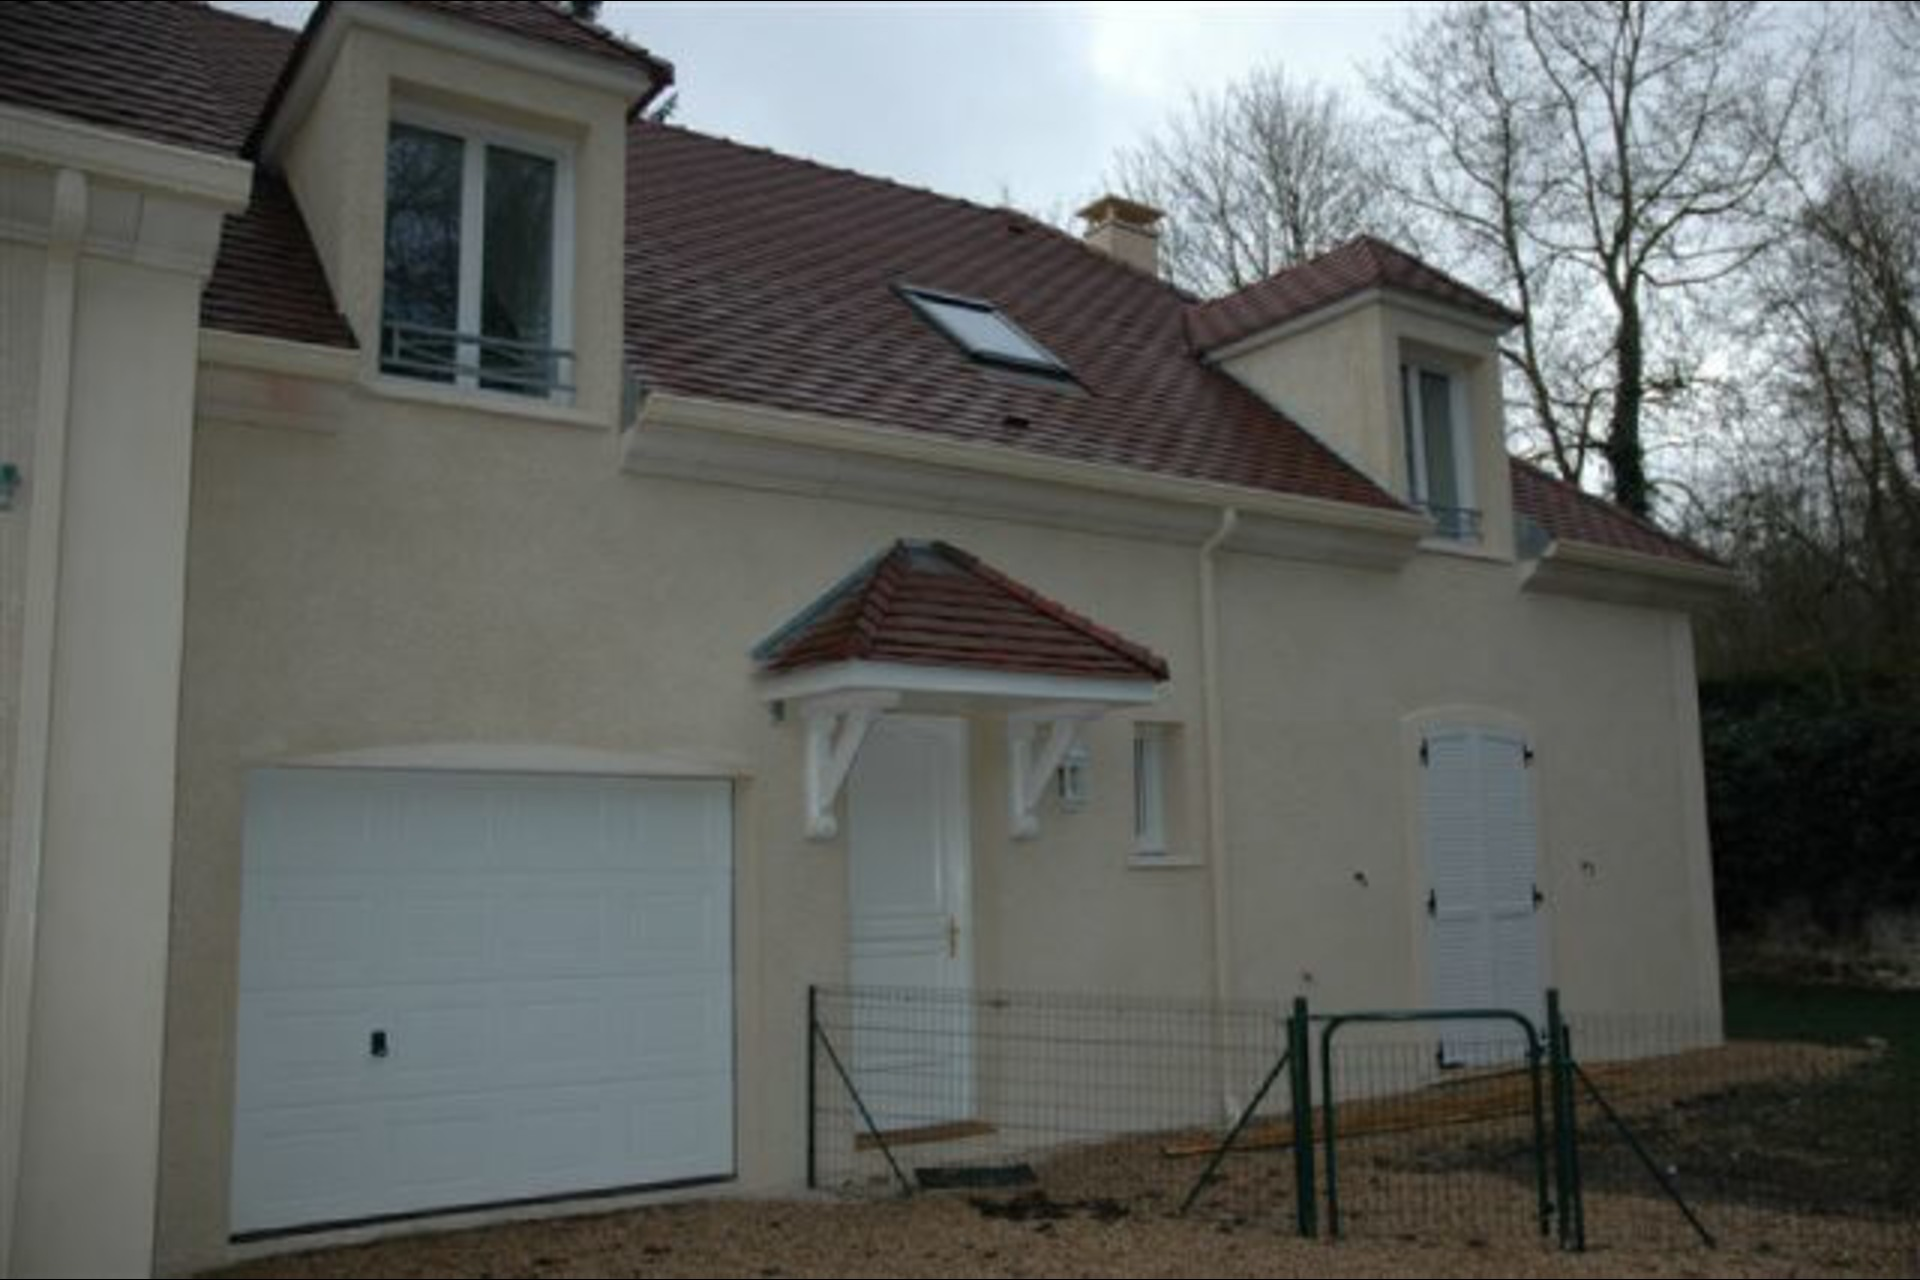 image 1 - House For rent - 7 rooms